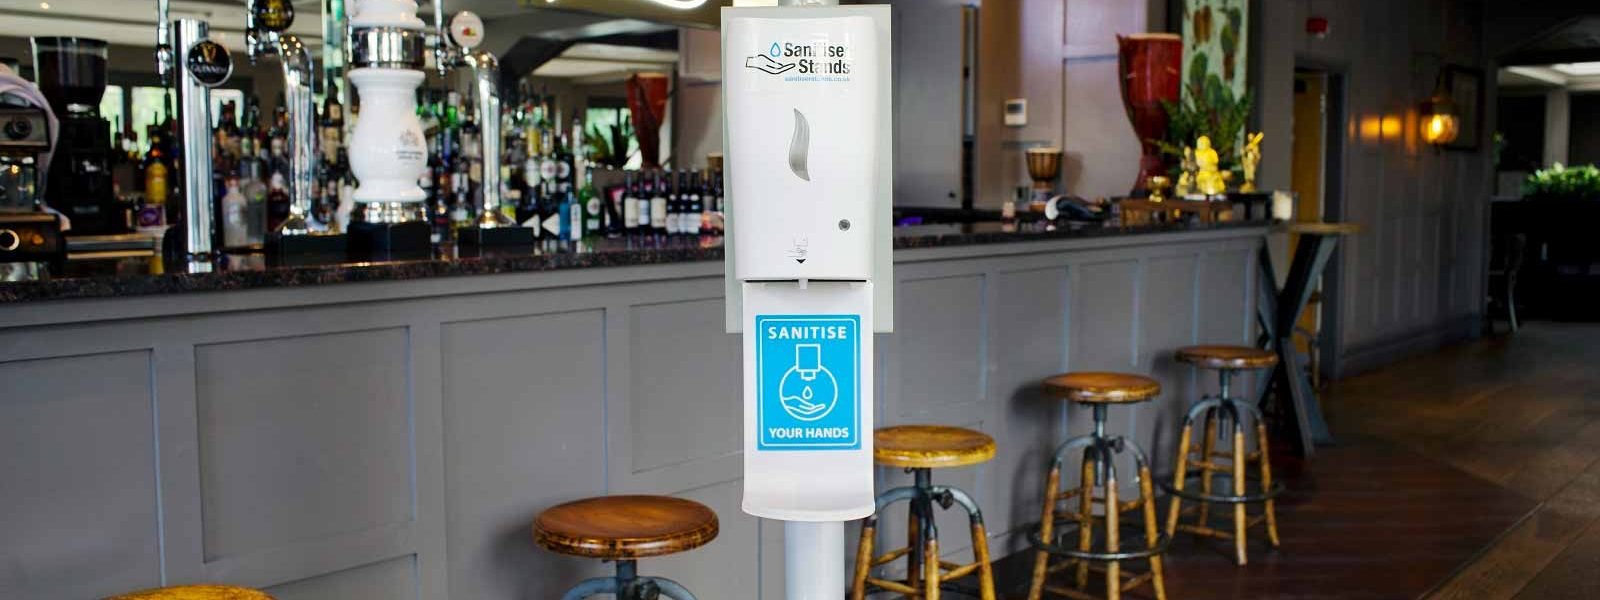 Automatic Hand Sanitiser Stand - Bar Location Shot